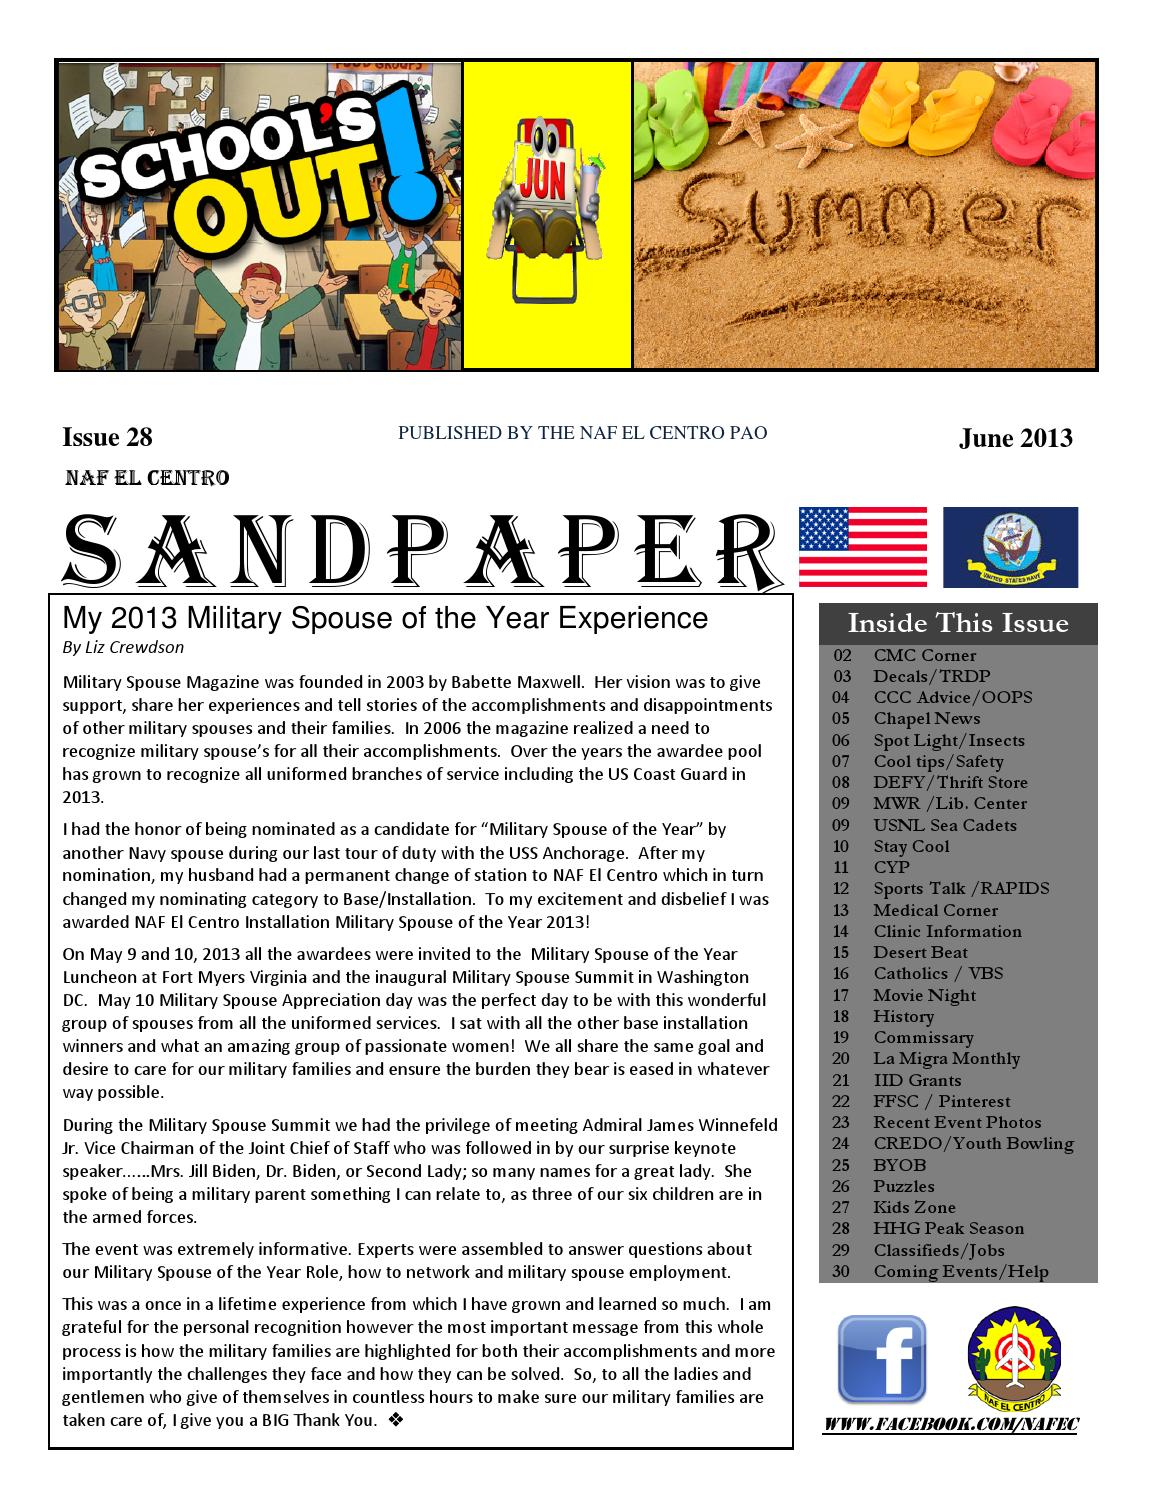 Sandpaper Issue 28 June 2013 By Our Family Inspiration